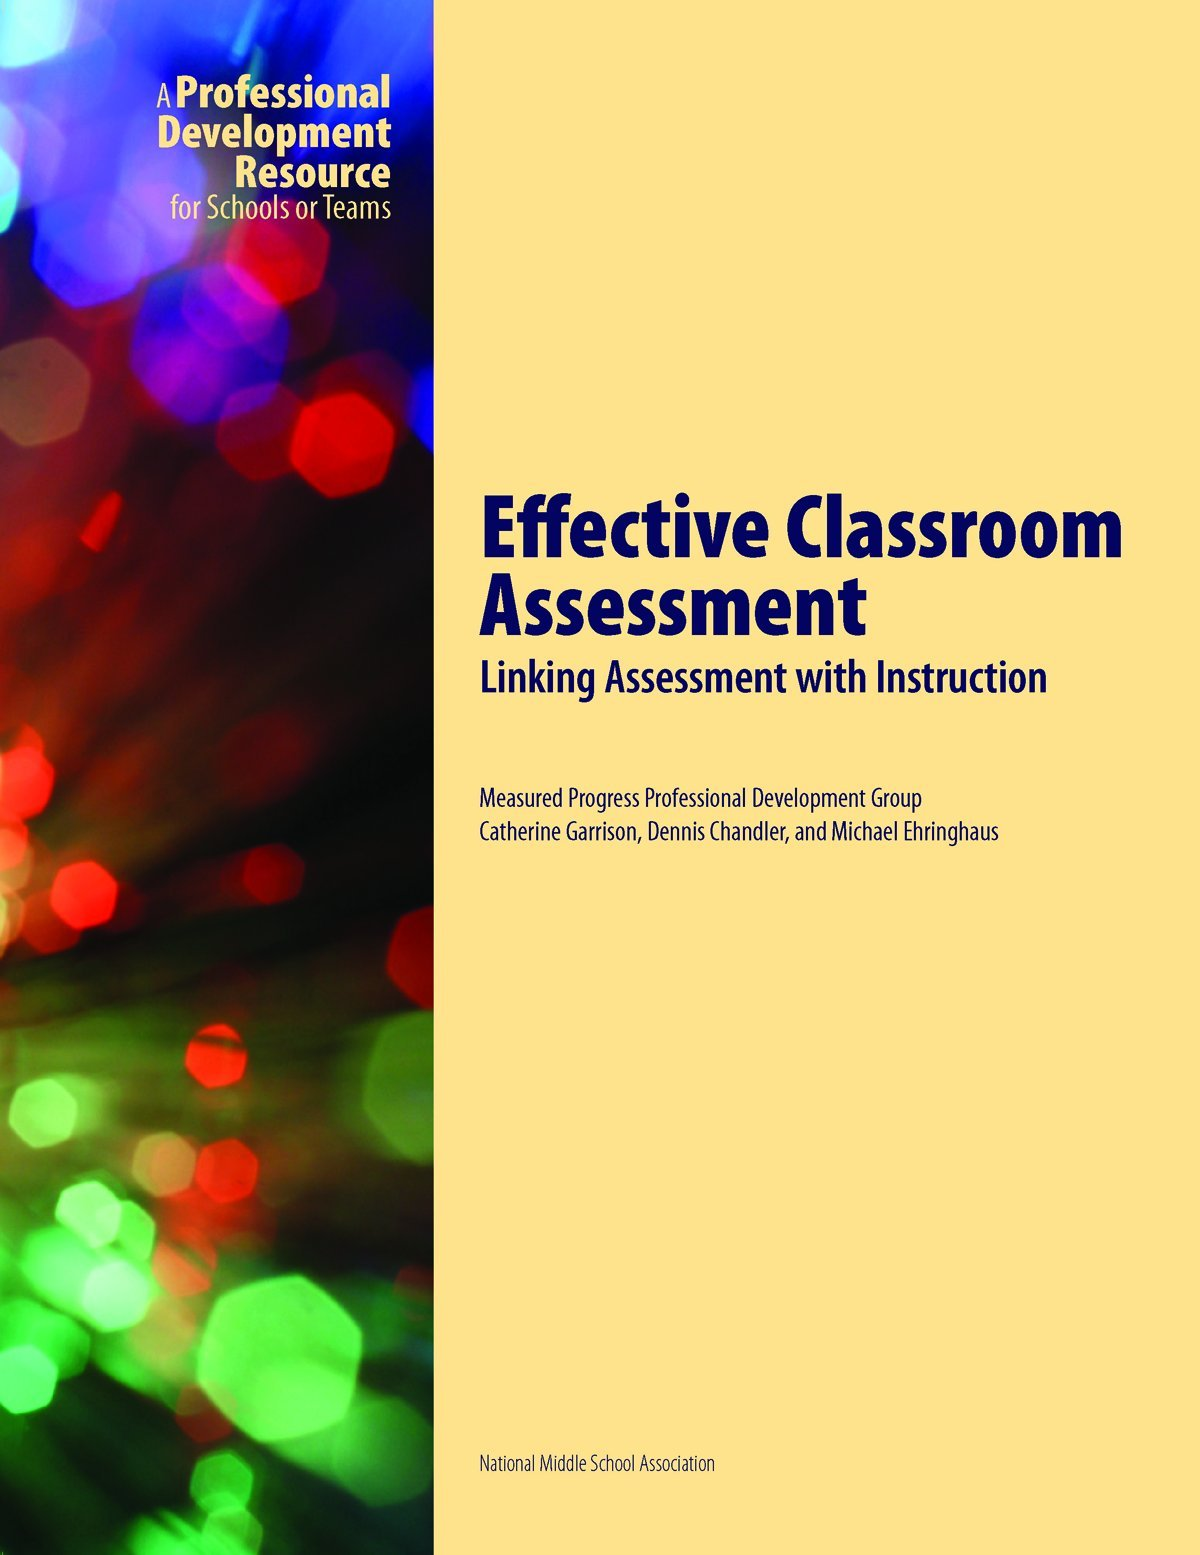 Effective Classroom Assessment: Linking Assessment with Instruction PDF